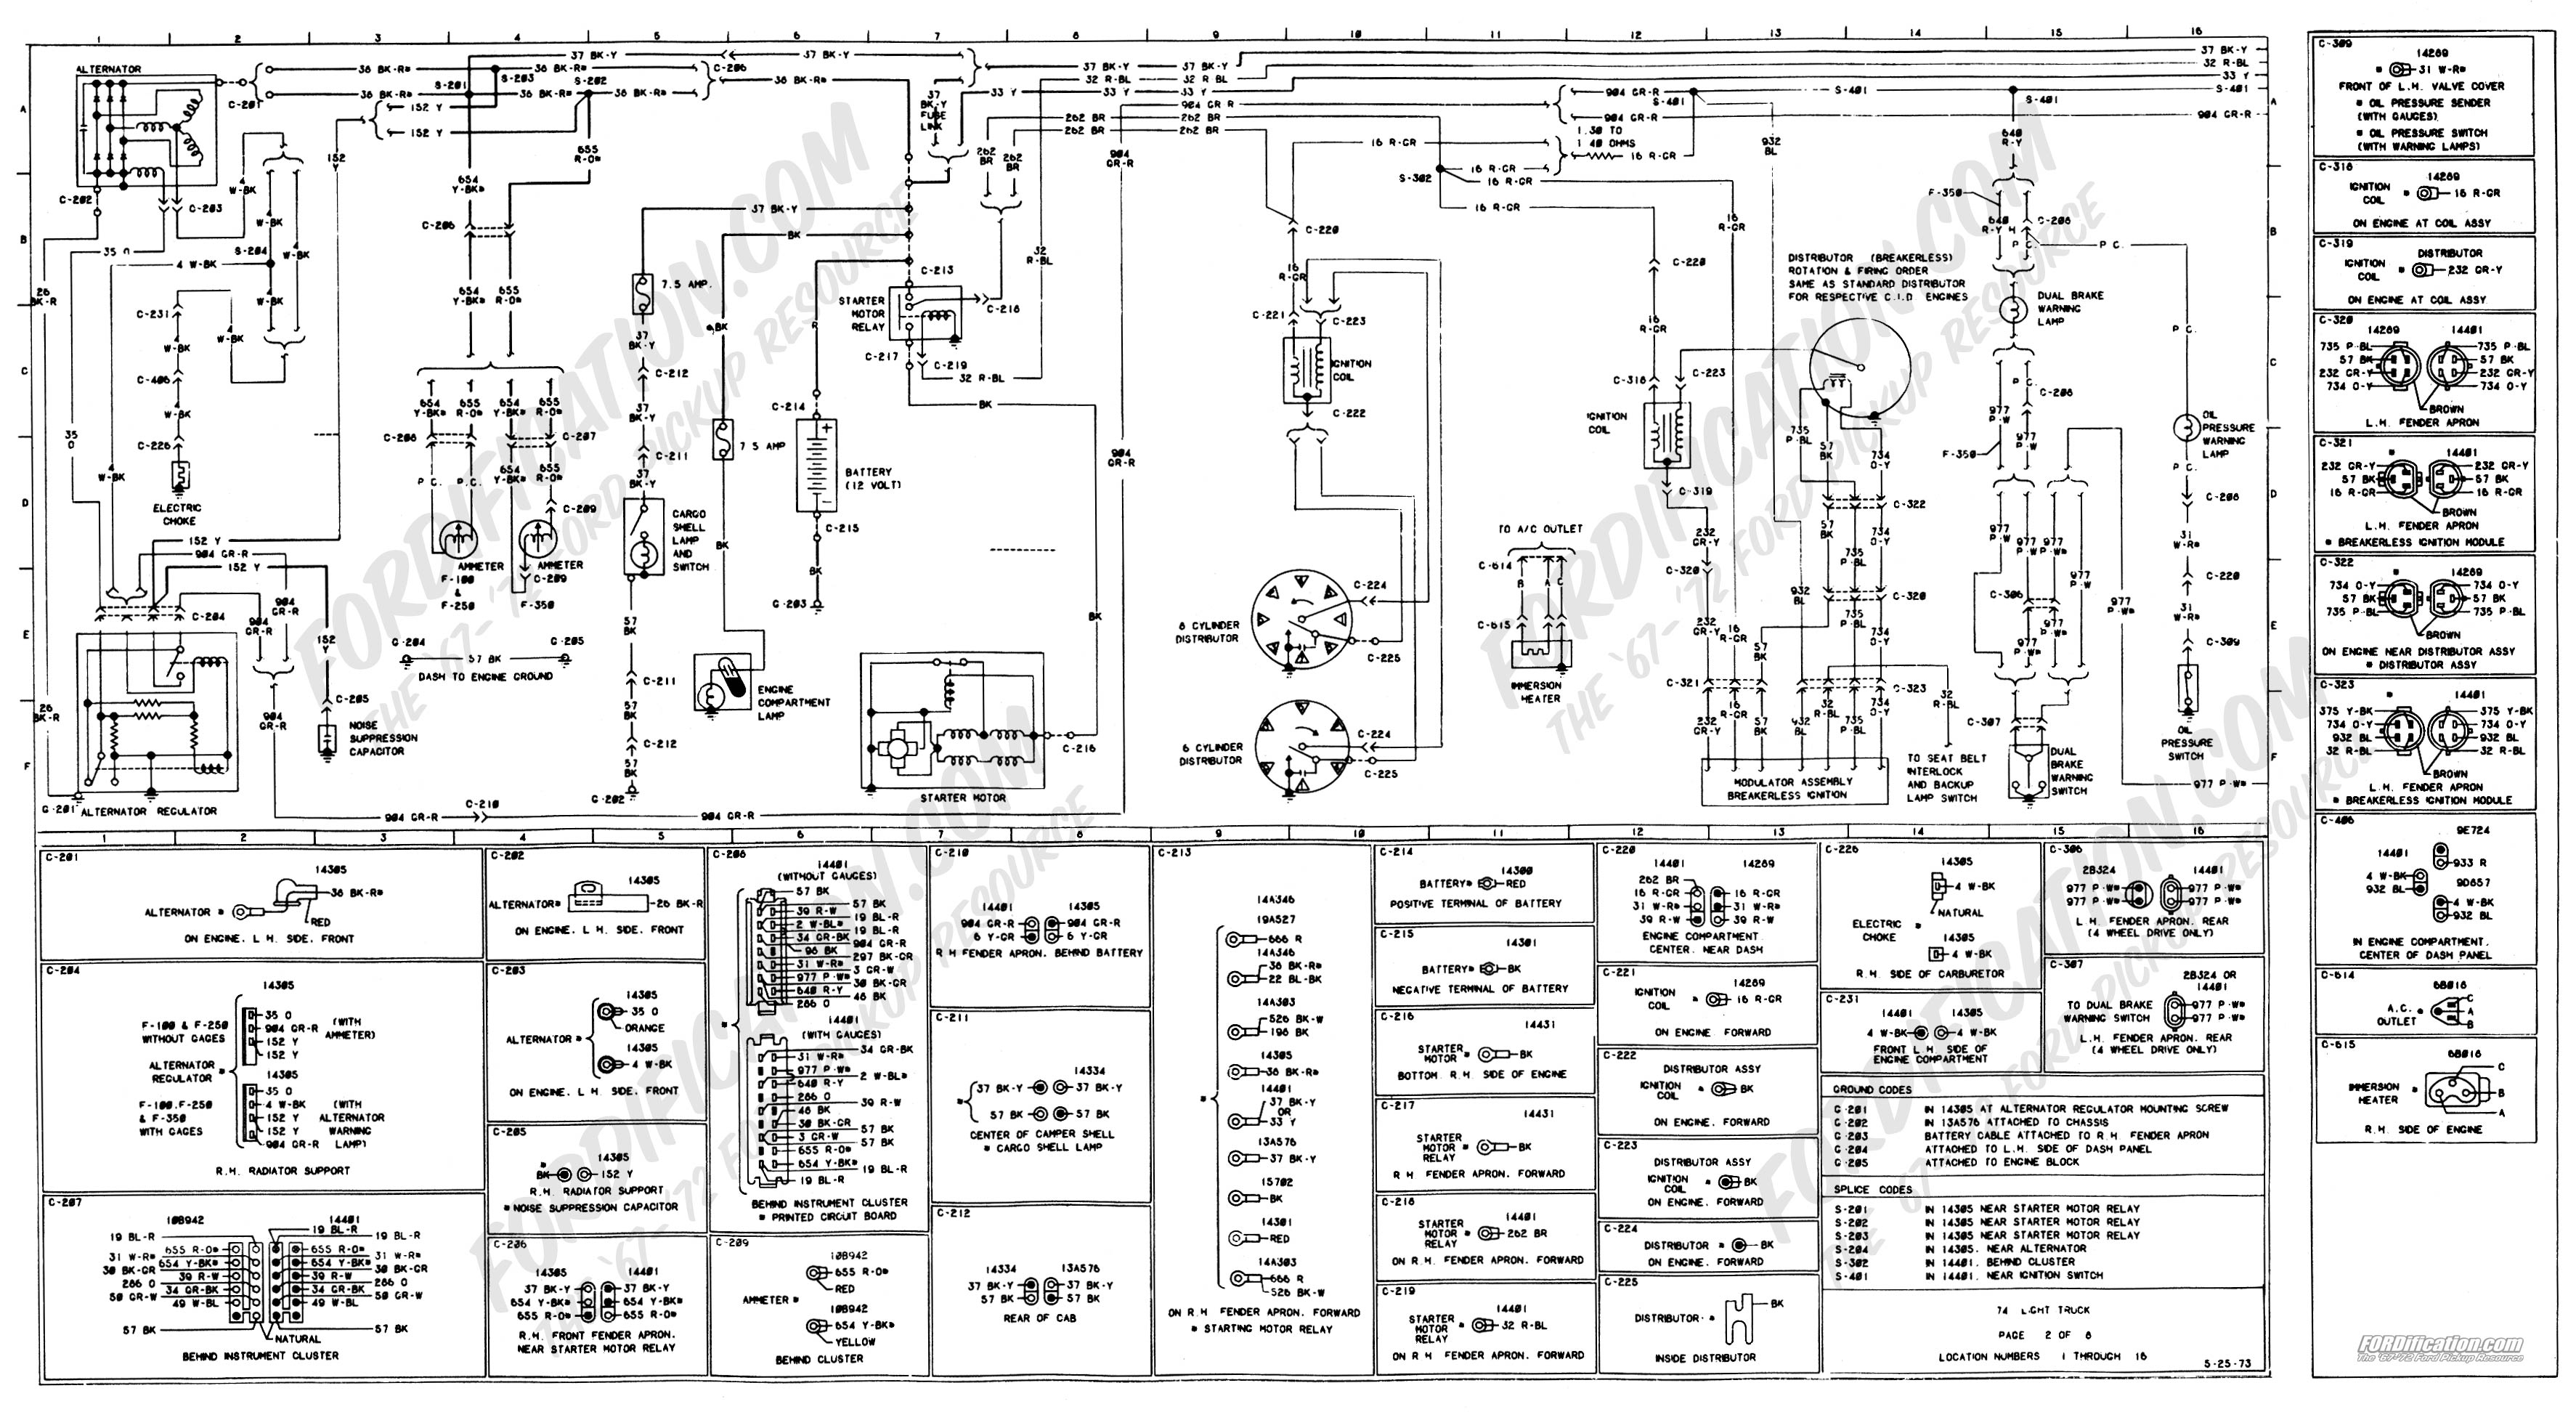 1998 ford F150 Wiring Diagram | Free Wiring Diagram